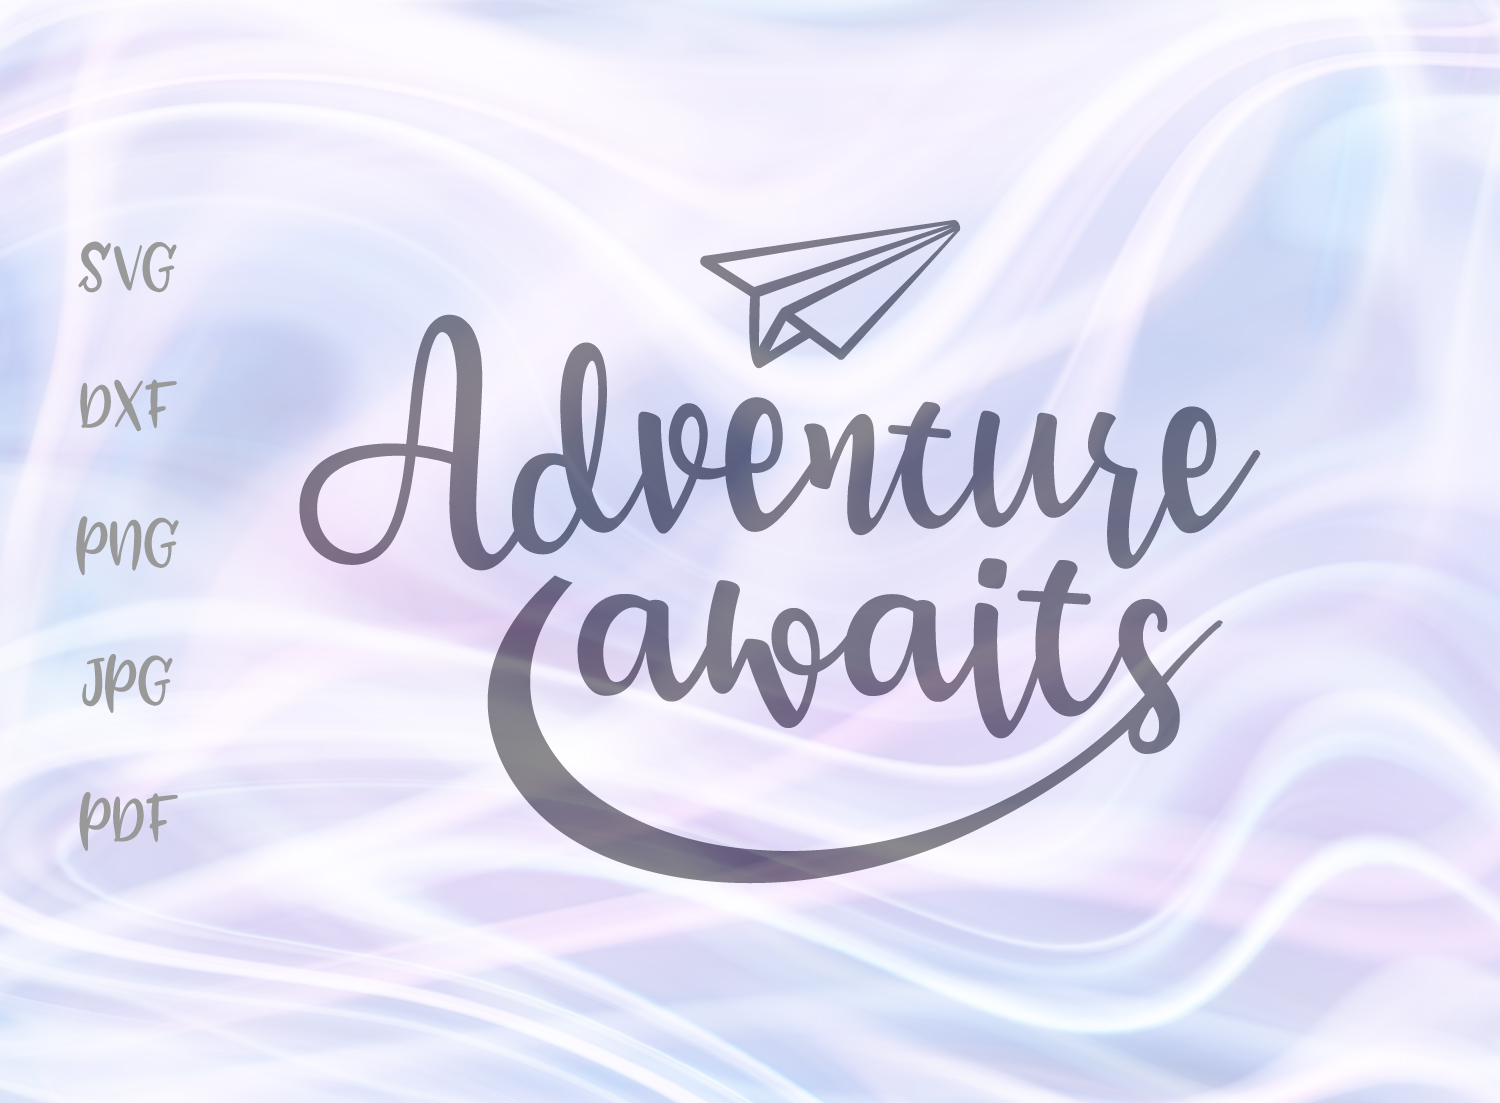 Download Free Adventure Awaits Svg Graphic By Digitals By Hanna Creative Fabrica for Cricut Explore, Silhouette and other cutting machines.